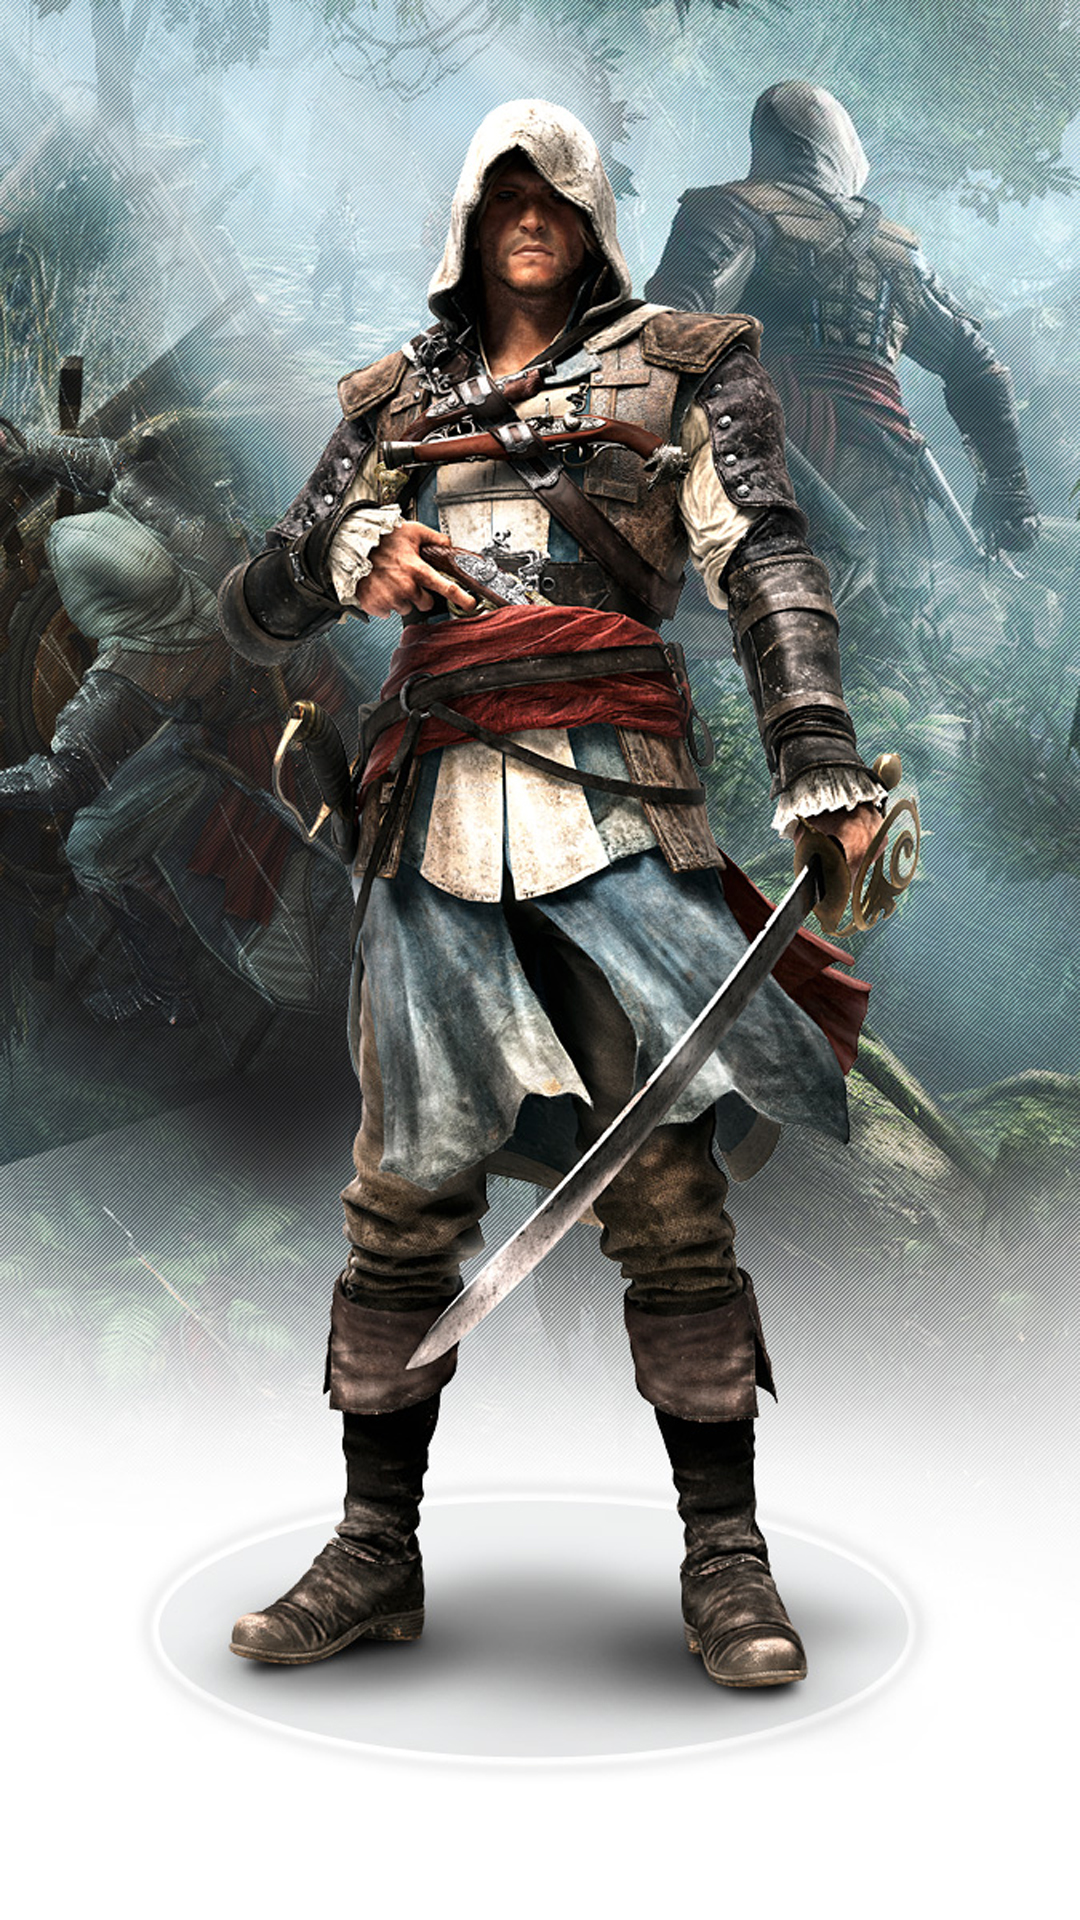 Assassins Creed 4 htc one wallpaper - Best htc one wallpapers